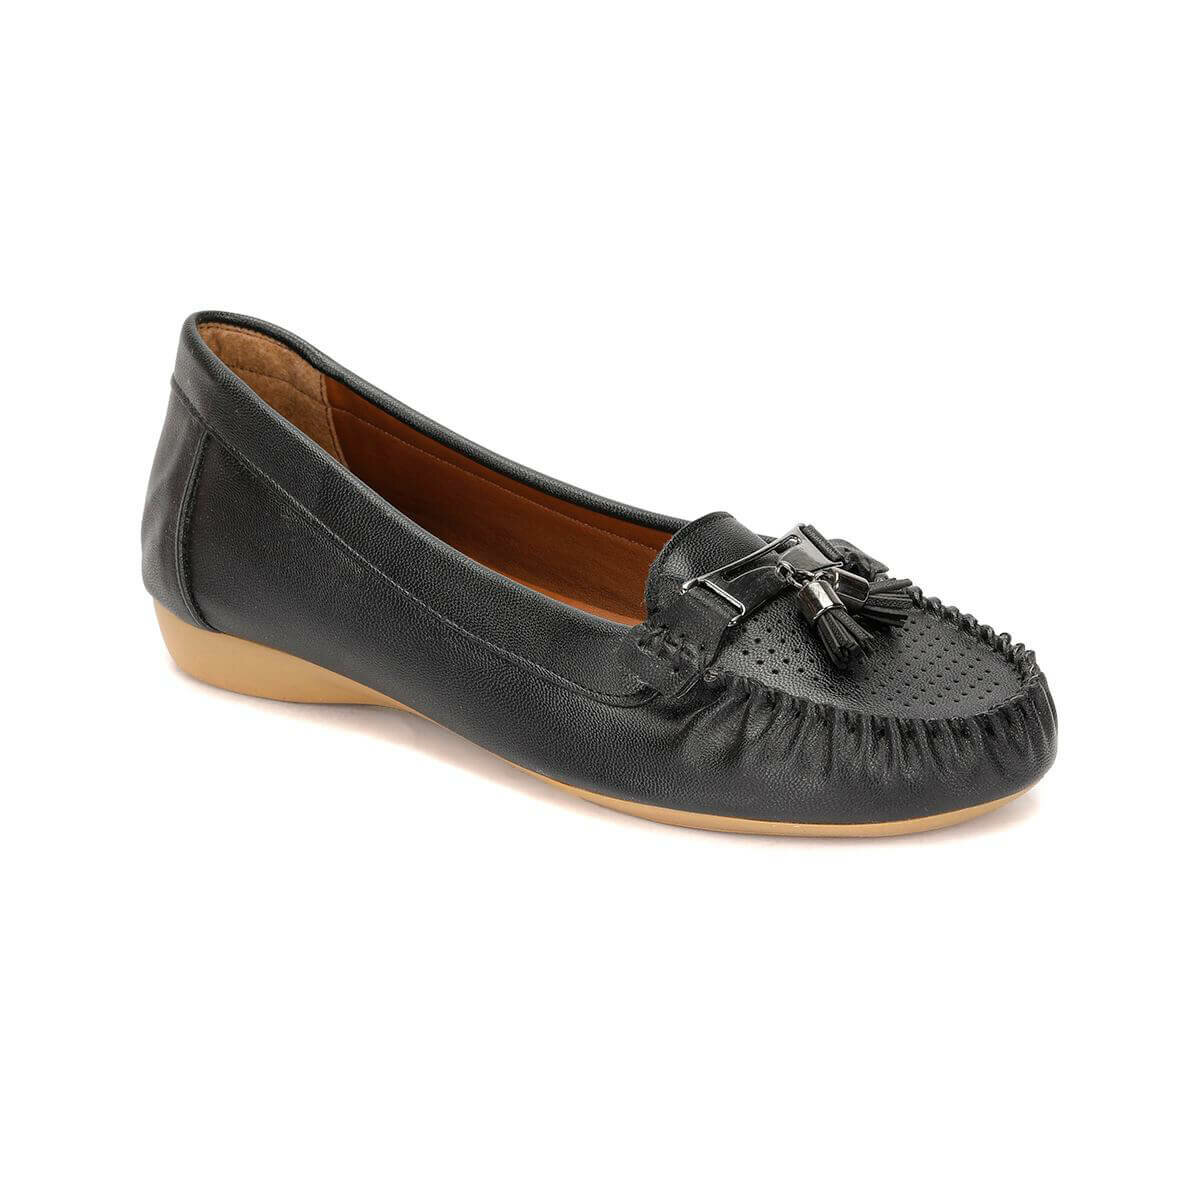 FLO 81. 157232.Z Black Women Loafer Shoes Polaris